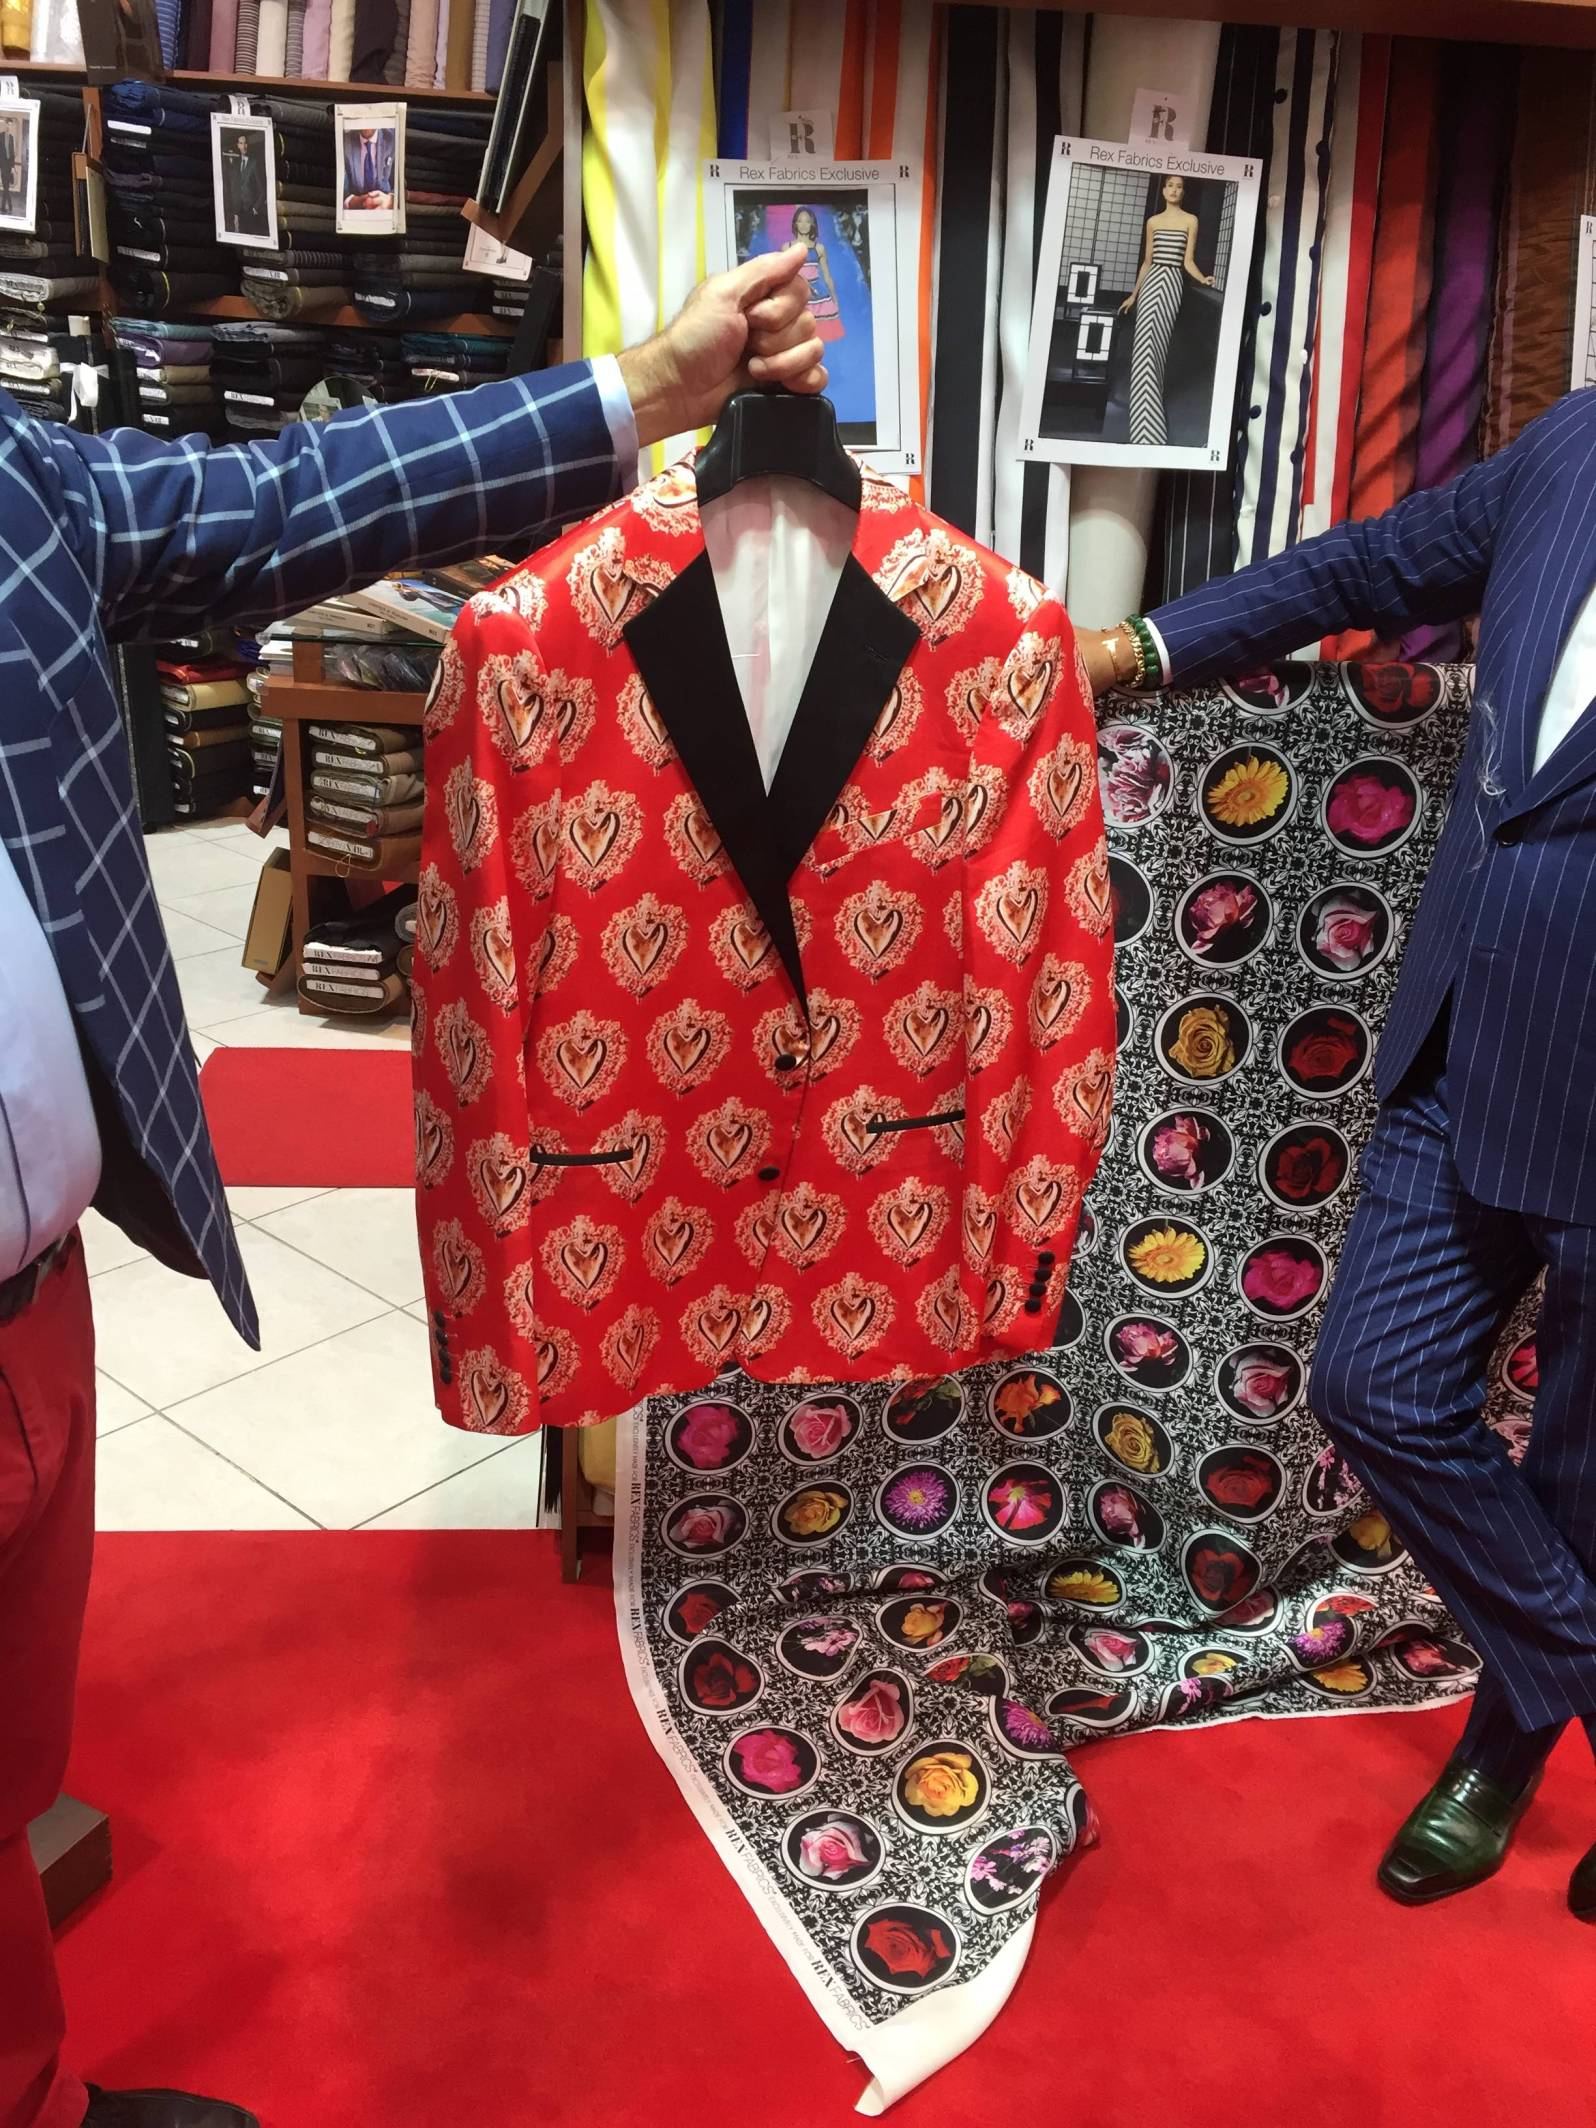 The suit Sager wore on Valentine's Day 2016 during the All Star Game (Credit: Rob Wile/The New Tropic)